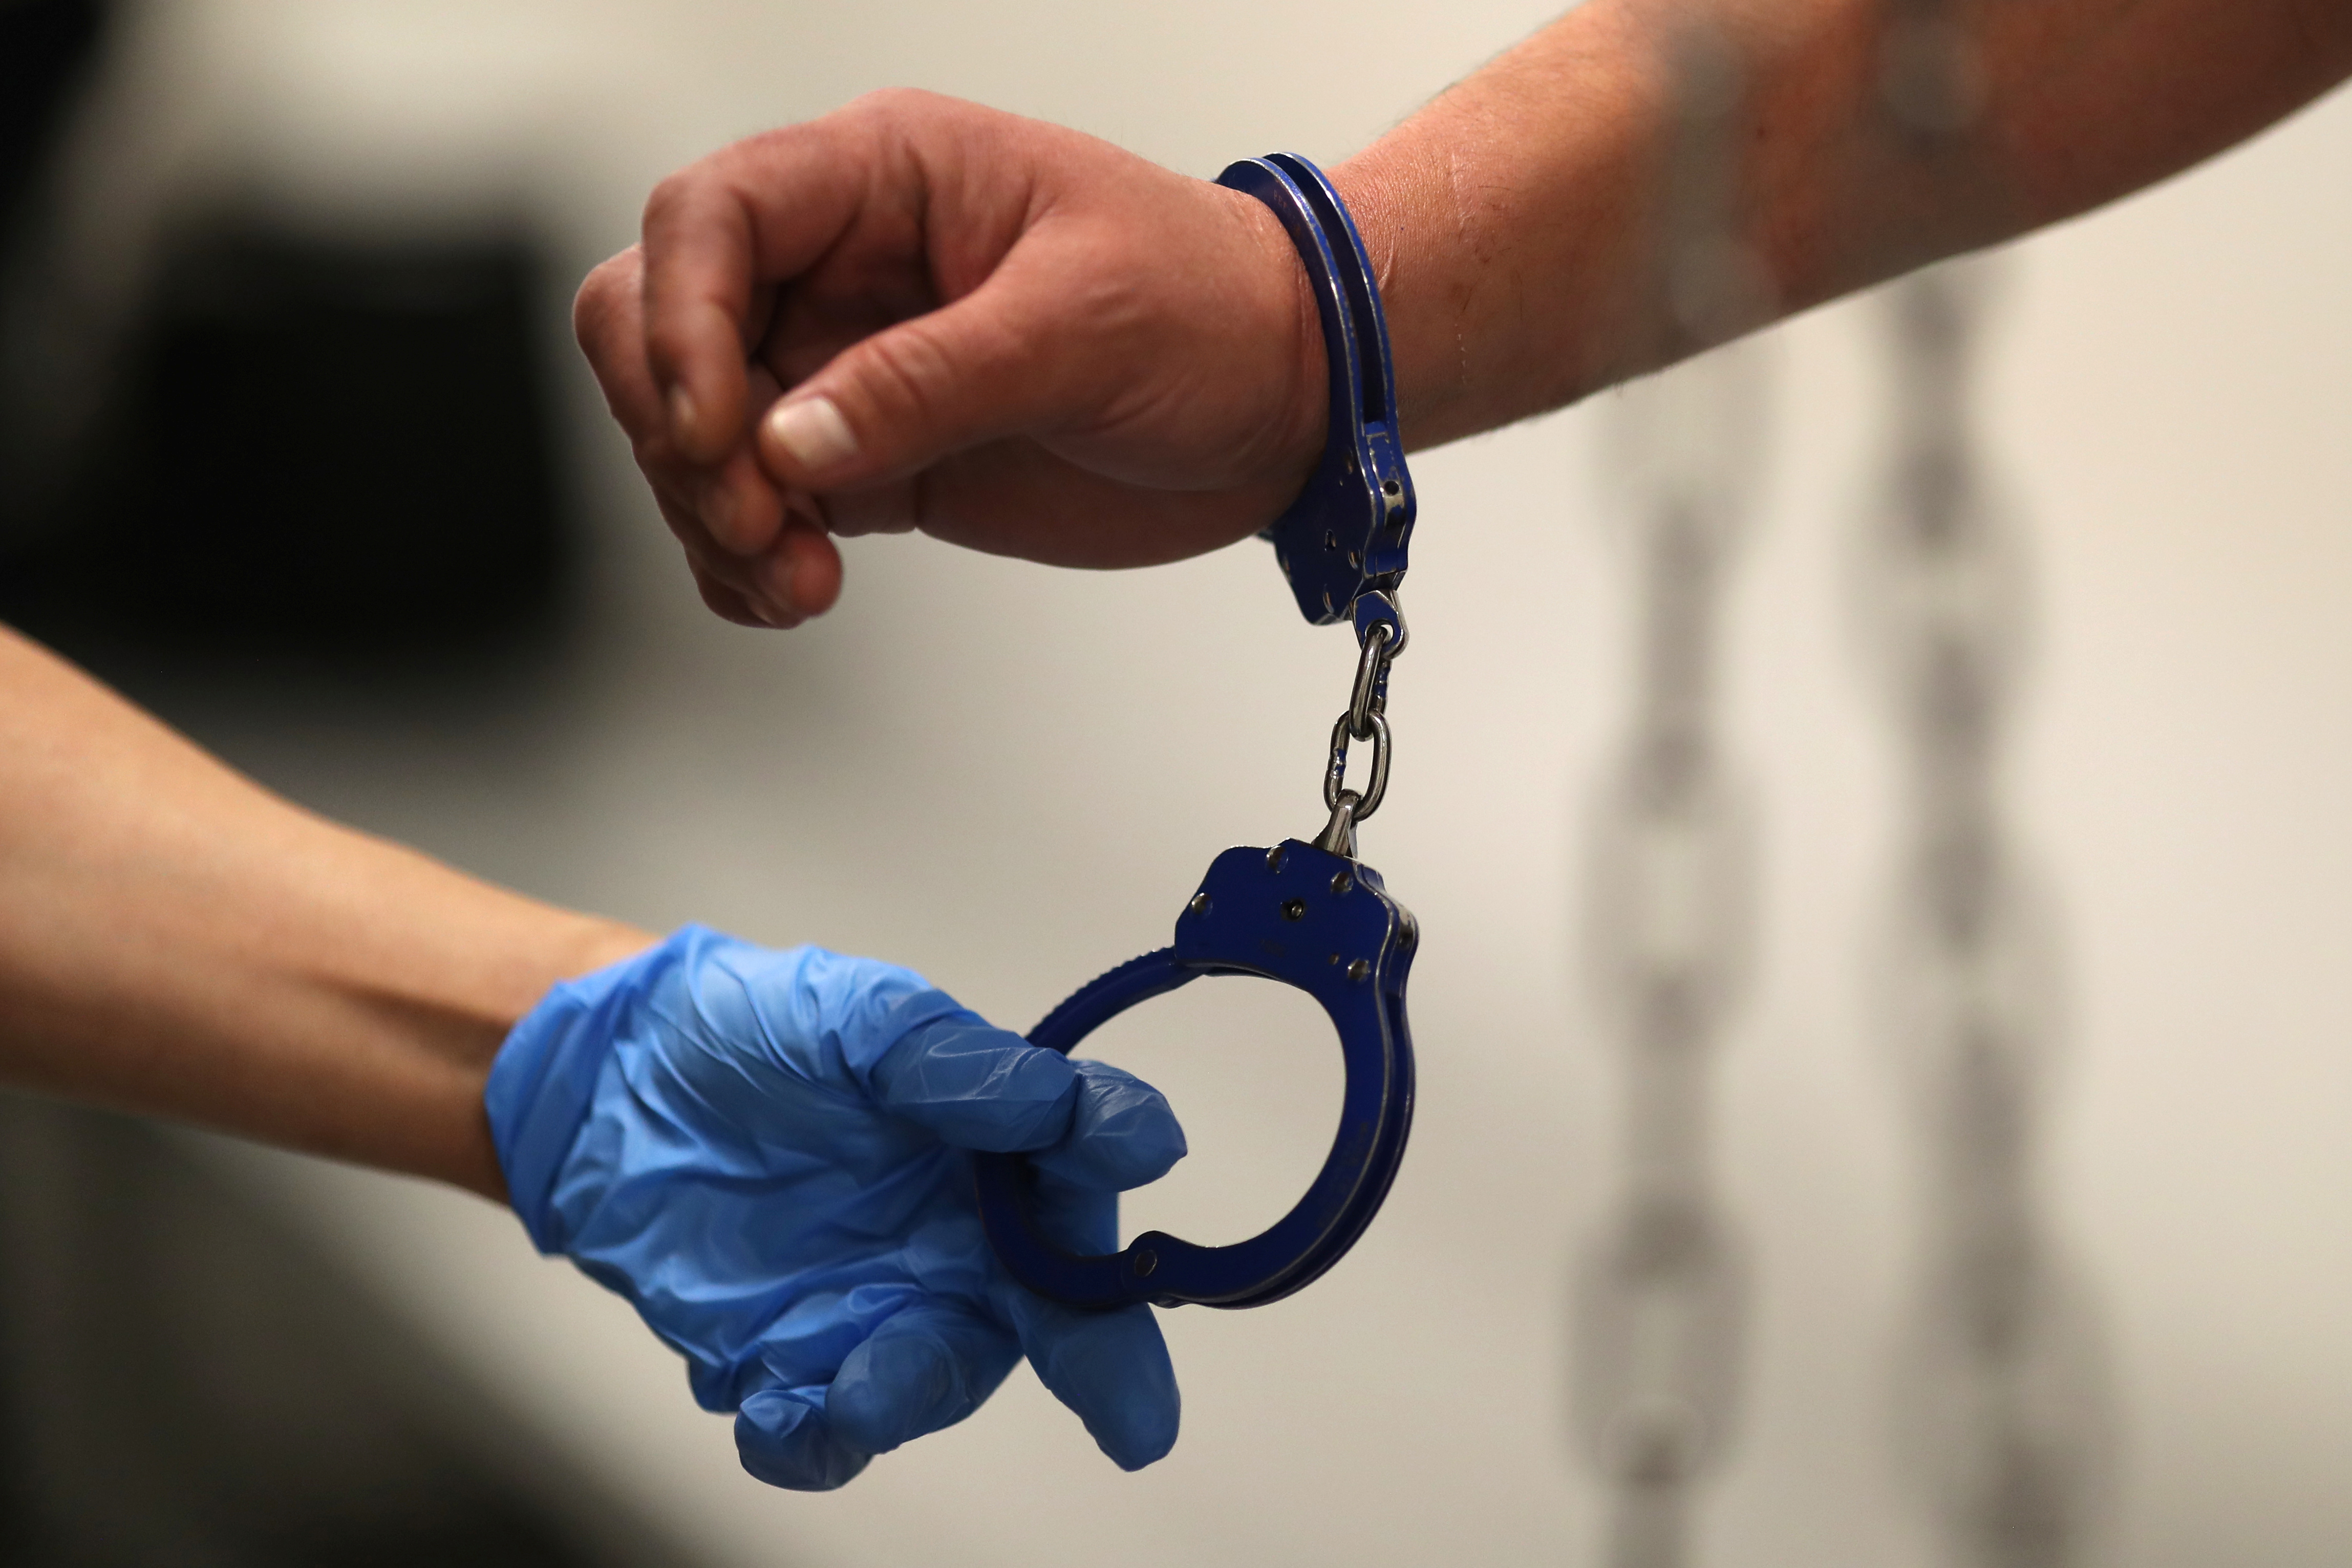 A U.S. Immigration and Customs Enforcement's (ICE) Fugitive Operations Agent takes handcuffs off before booking an immigrant in Los Angeles